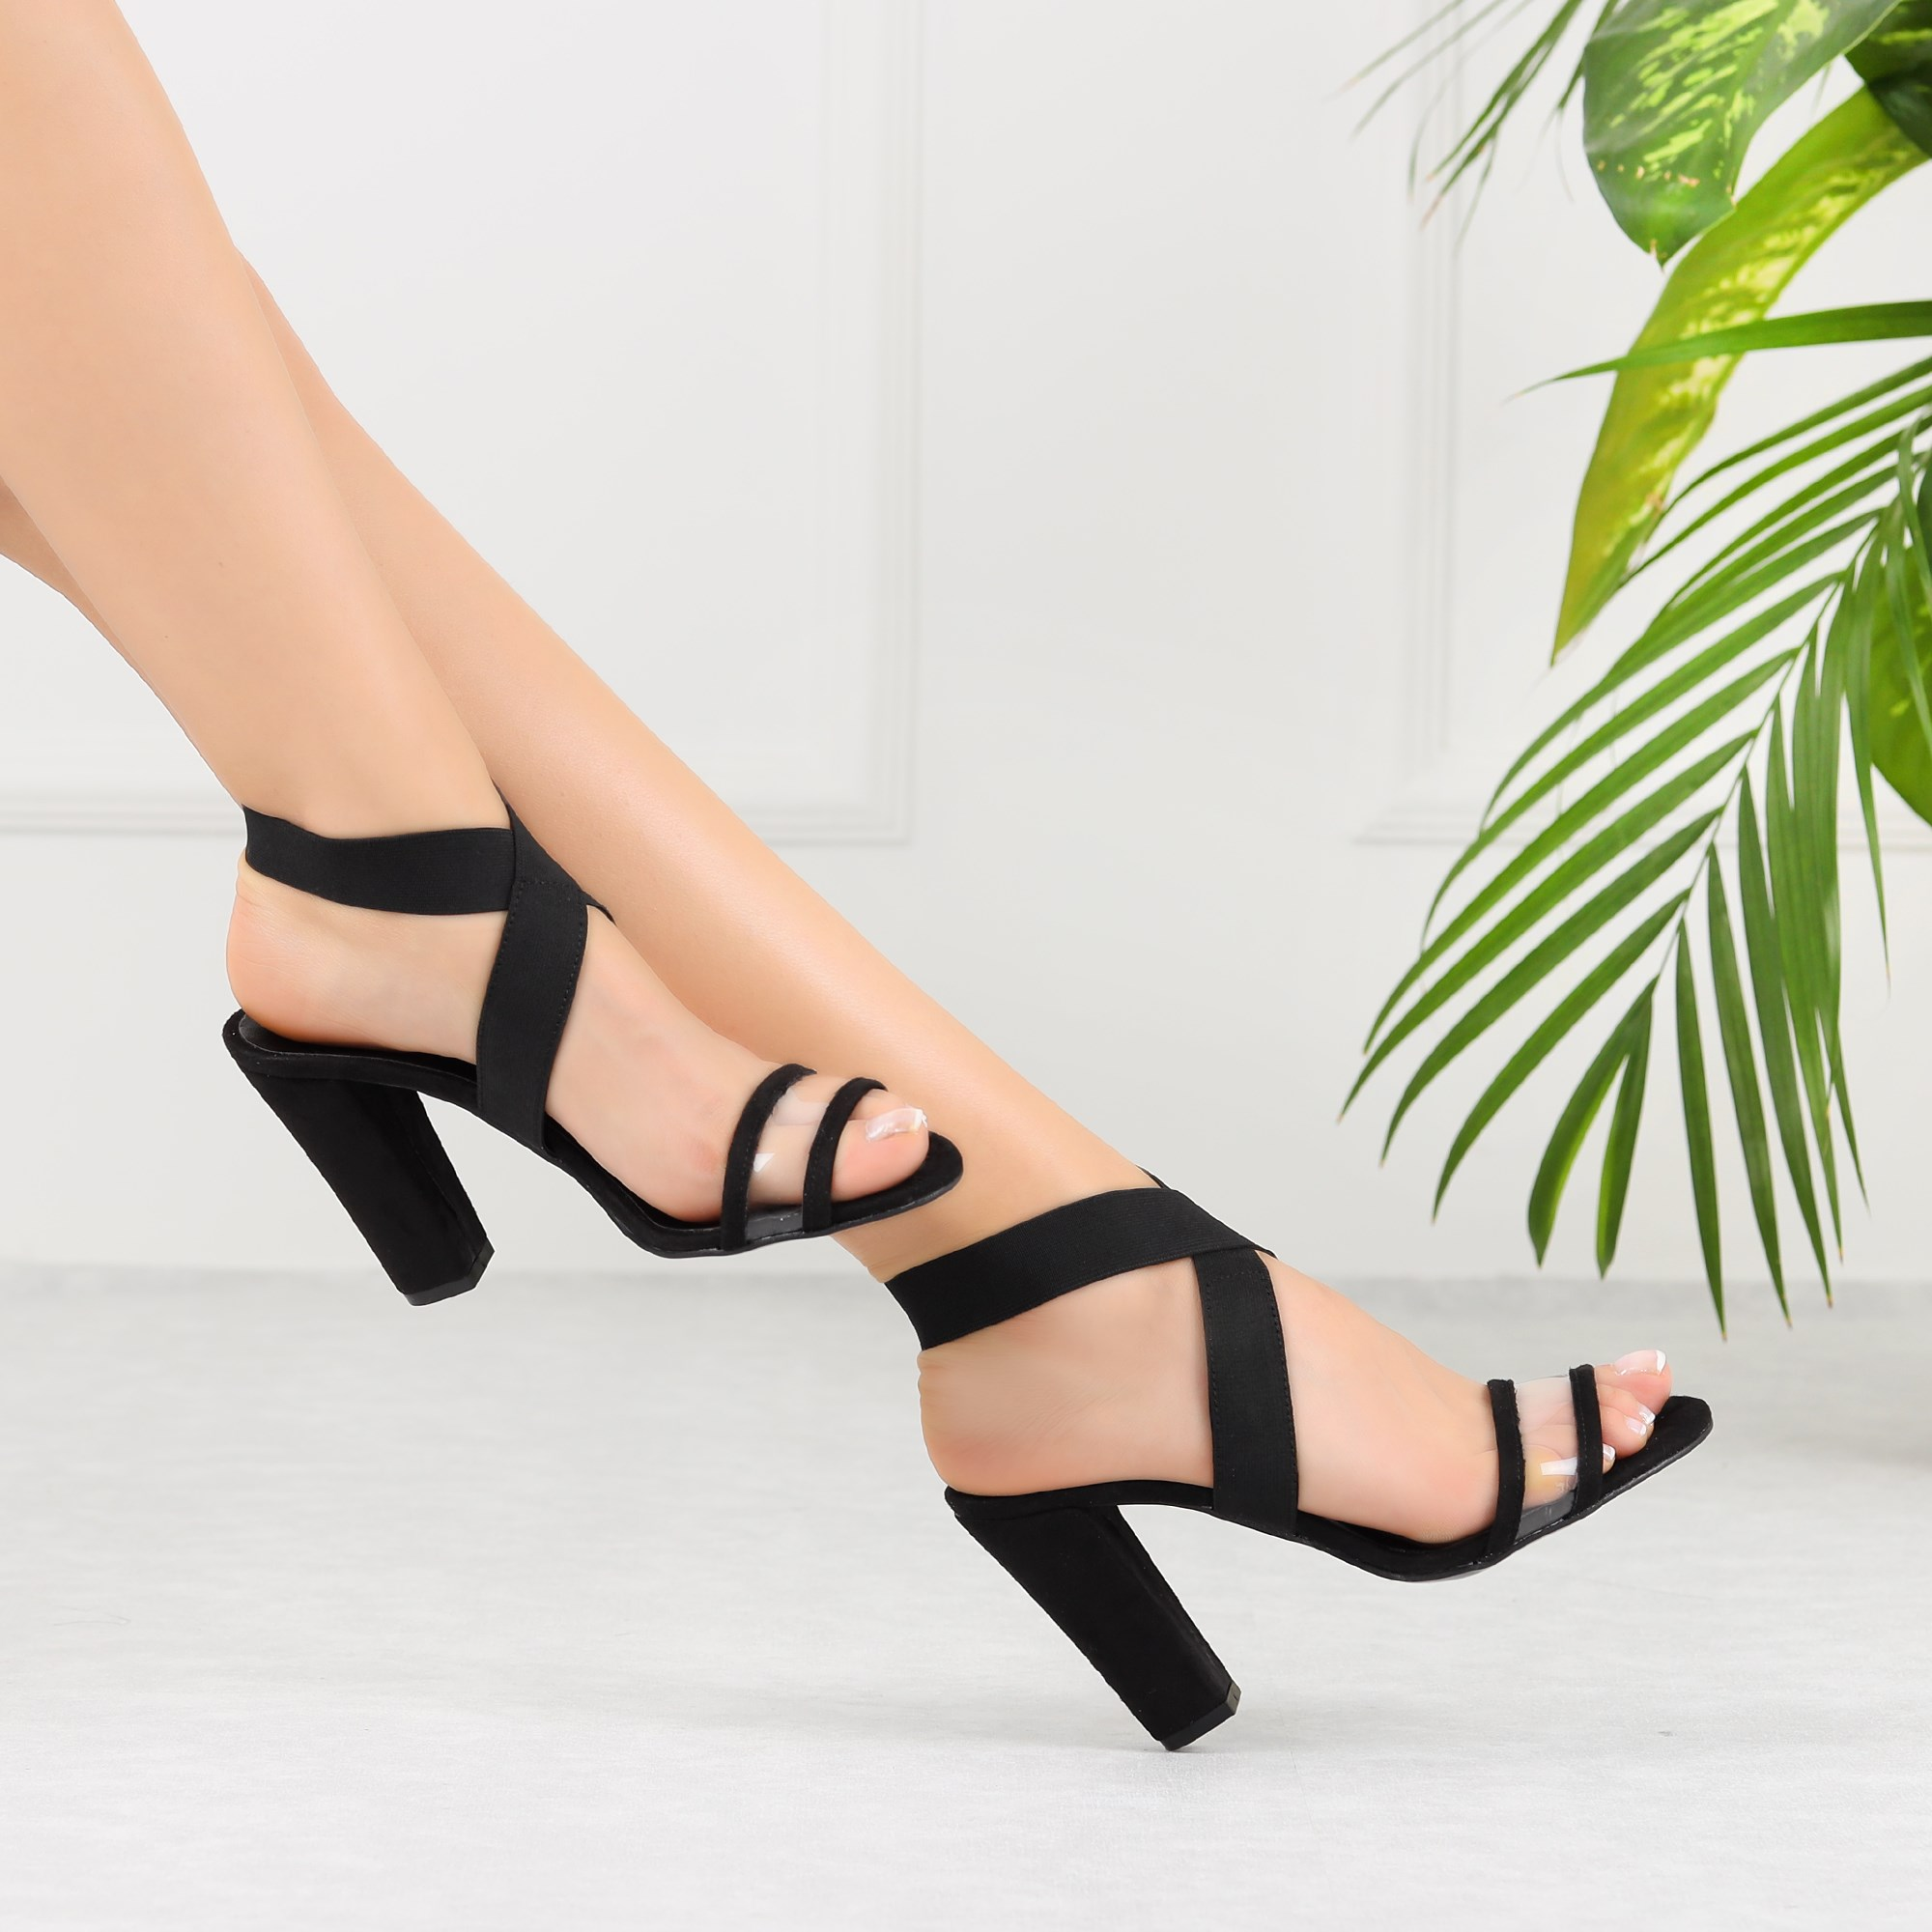 Bozanis Suede Black Transparent Band Women High Heels Shoes